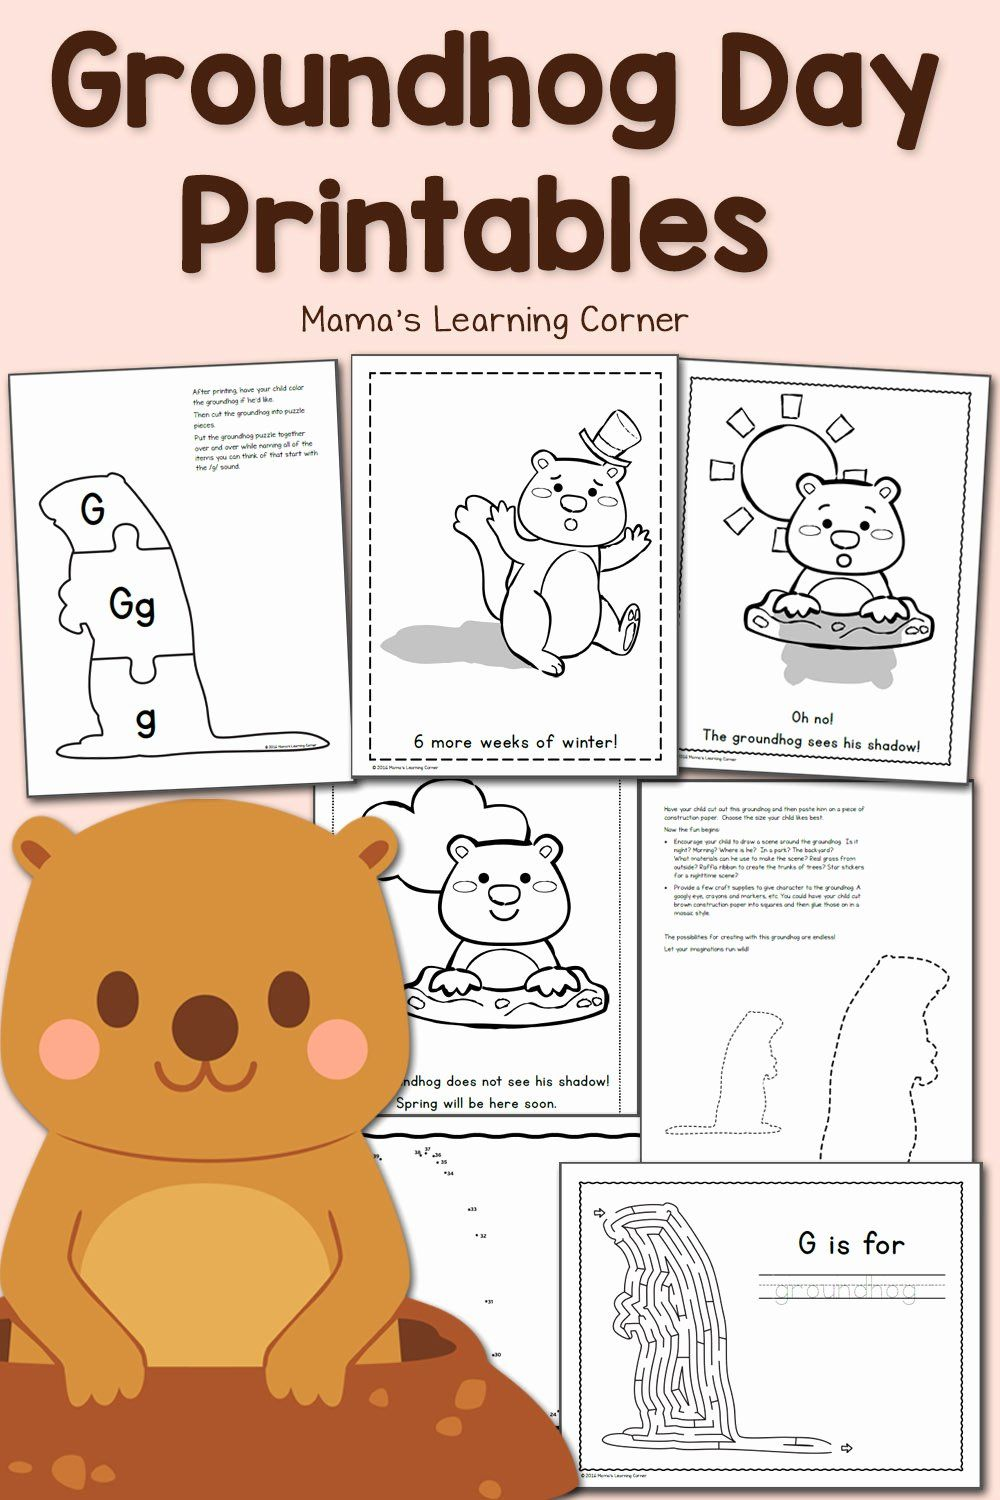 Groundhog Day Coloring Sheet Best Of Collection Groundhog Day Worksheets Sabadaphnecottage In 2020 Groundhog Day Activities Preschool Groundhog Groundhog Activities [ 1500 x 1000 Pixel ]